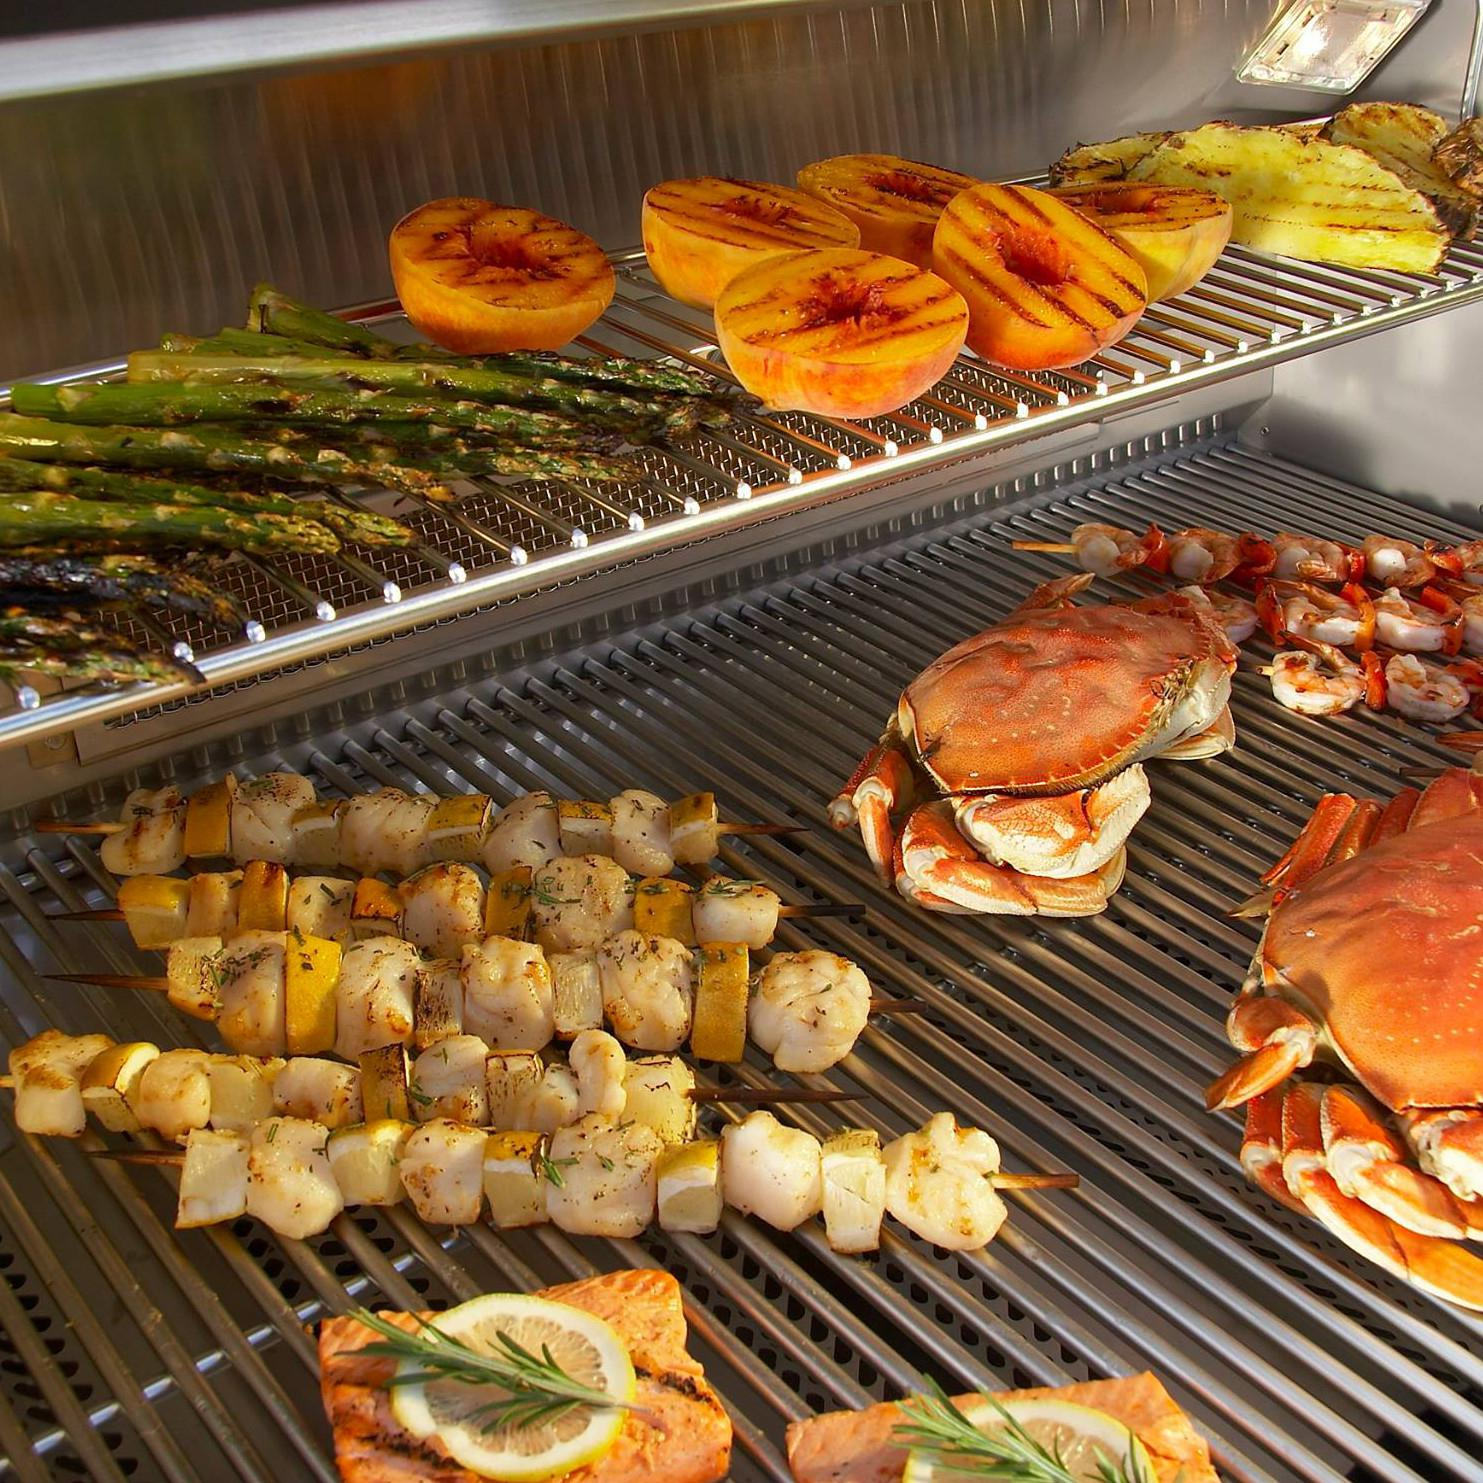 Fire Magic Echelon Diamond E660i Natural Gas Grill on Cart - Variety of Foods to Be Grilled